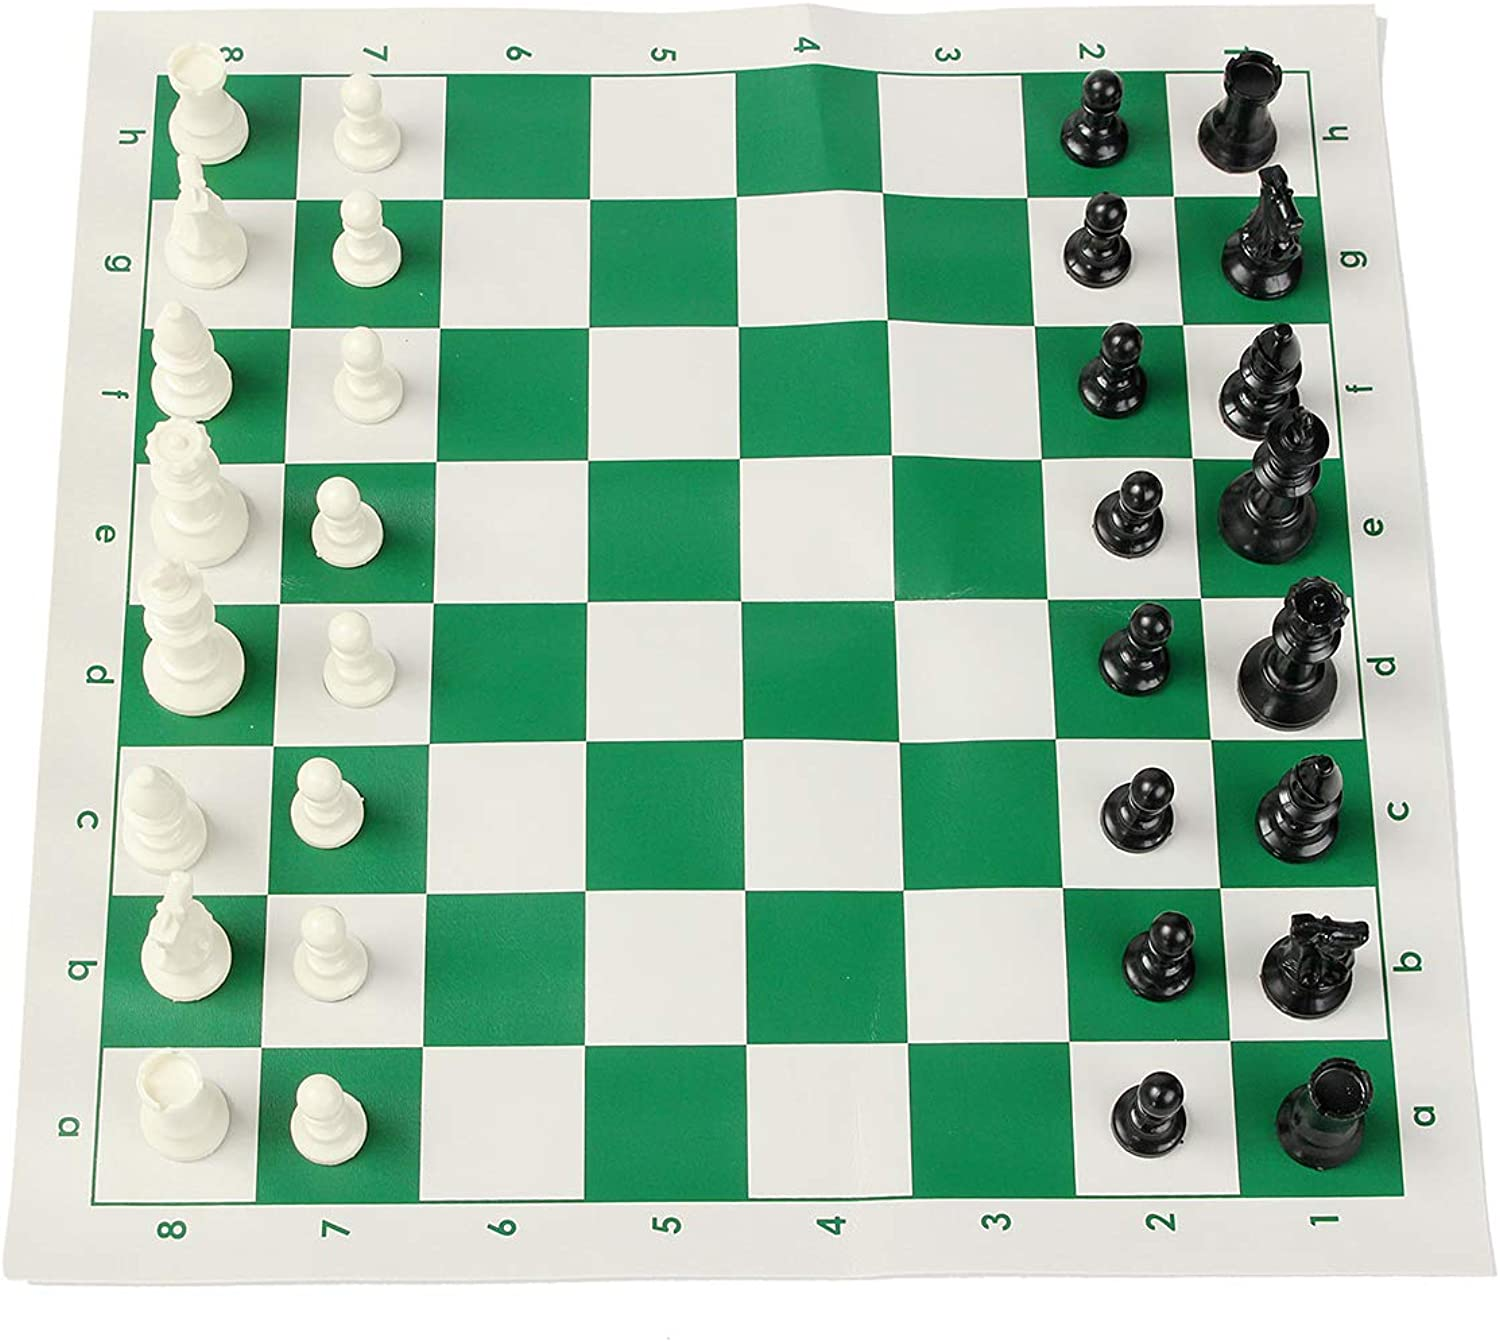 ShopSquare64 16 inch Tournament Chess Set Game Plastic Pieces Green Roll Outdoor Travel Camping Game